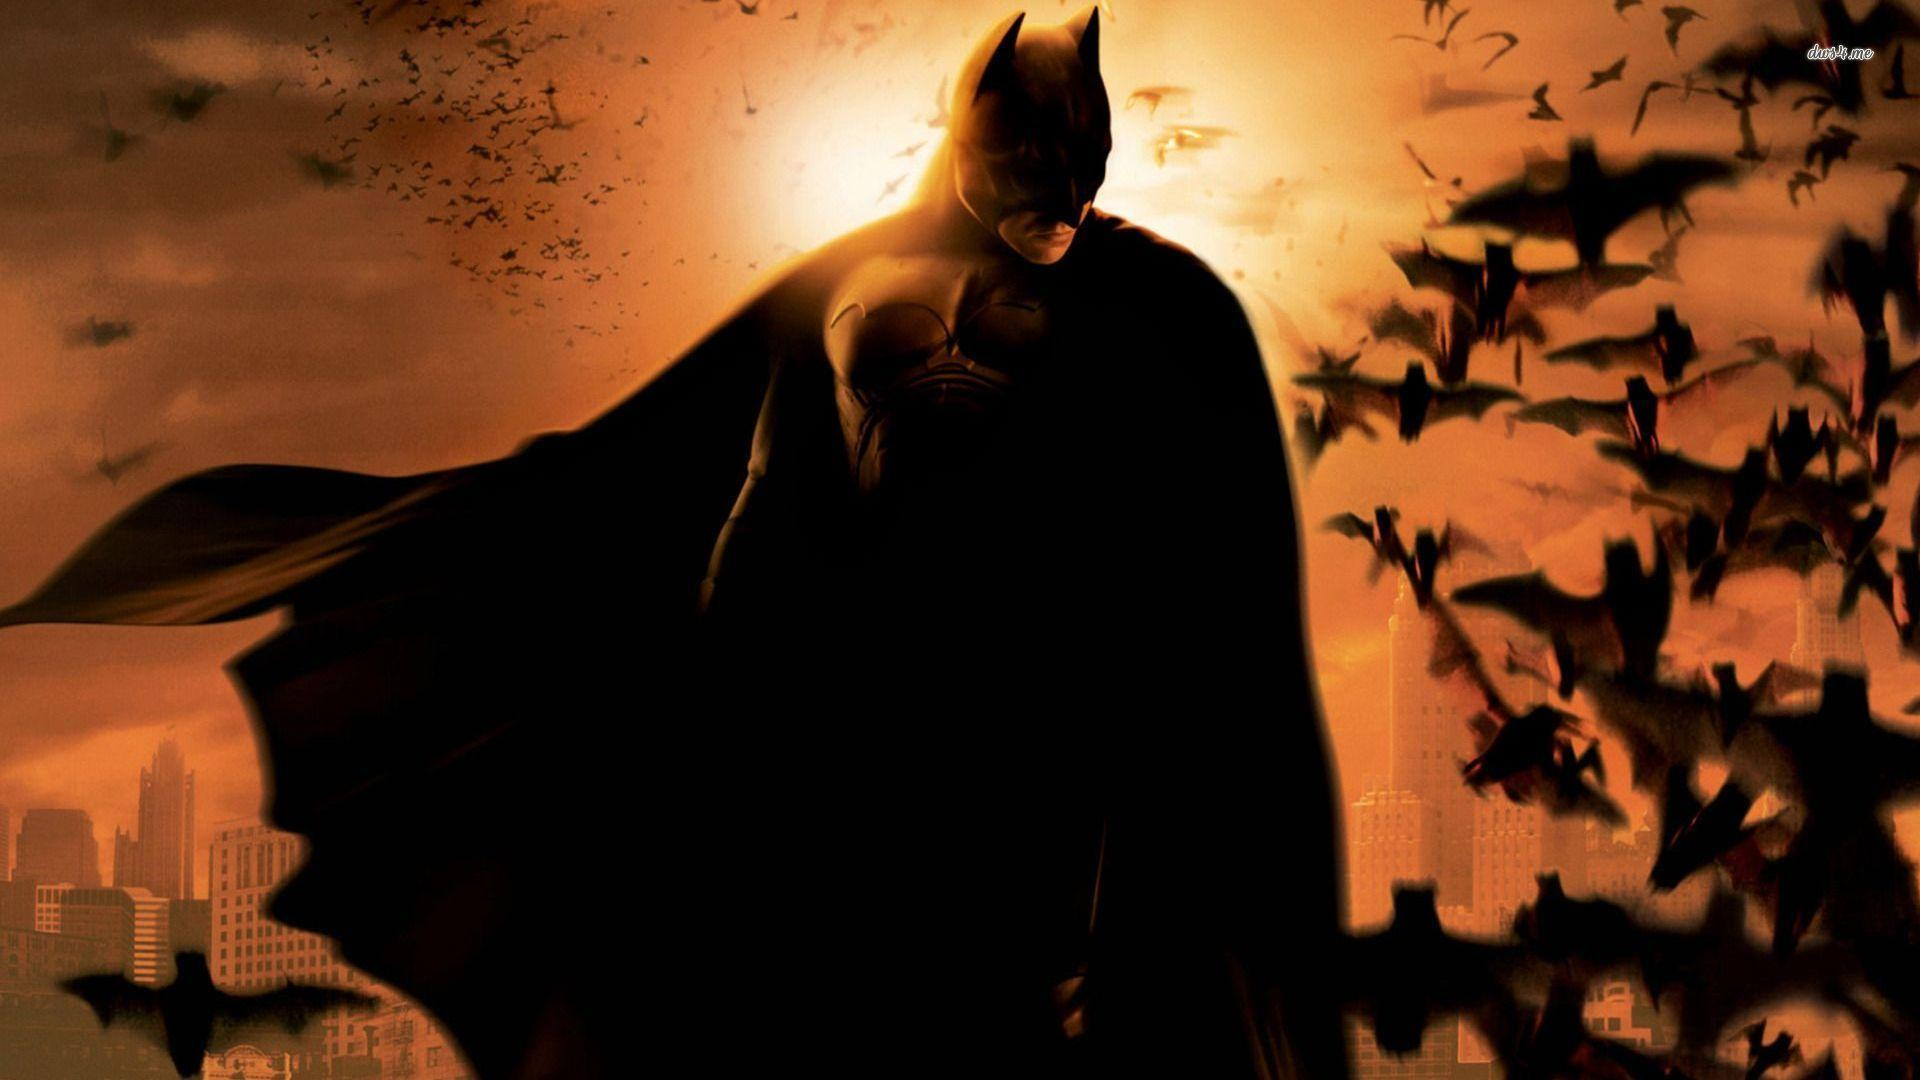 Batman Movie Wallpaper Desktop Download Movie #4681 Cinema Film ...